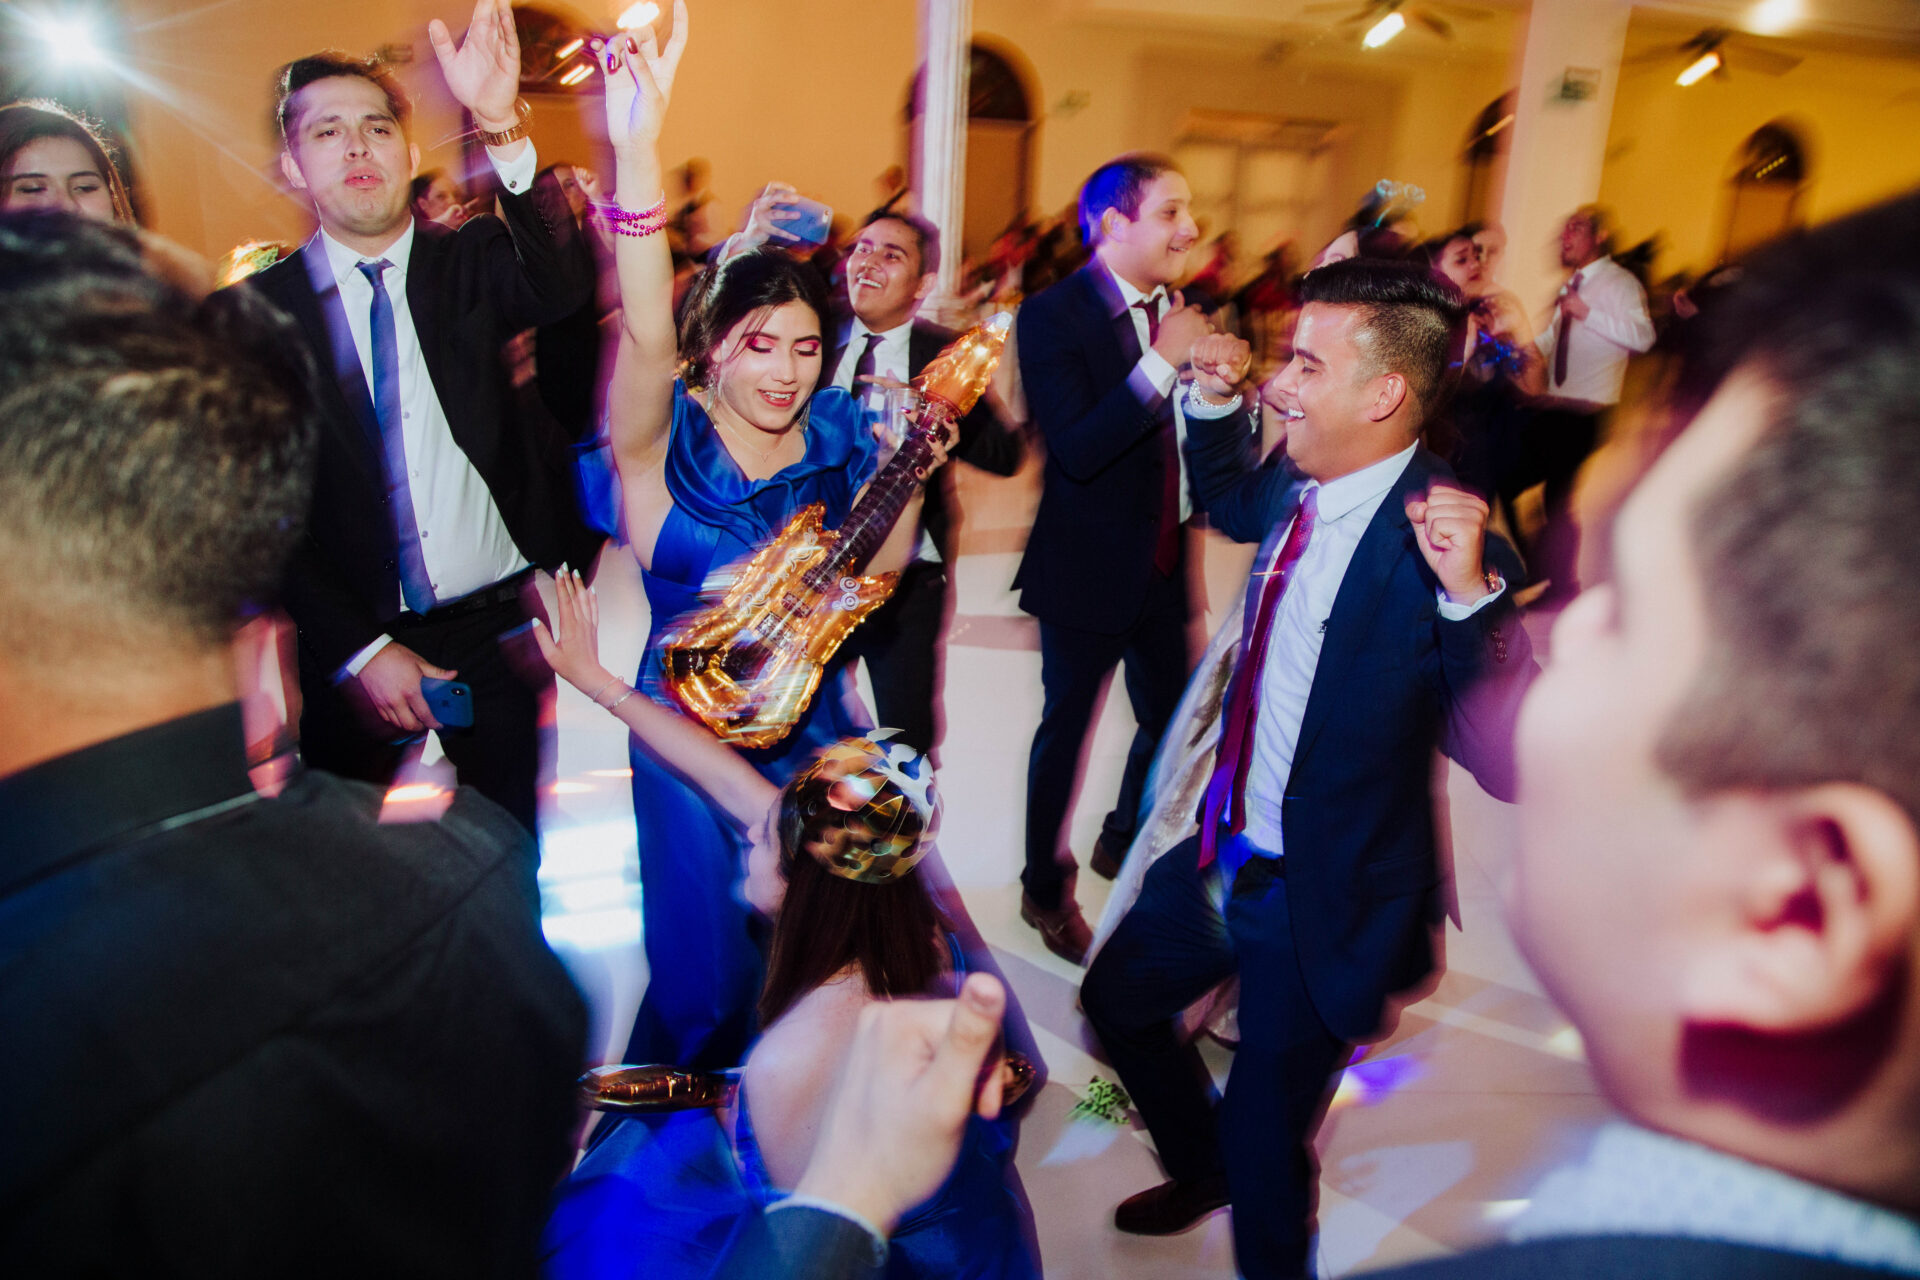 javier_noriega_fotografo_bodas_zacatecas_chihuahua_wedding_photographer34